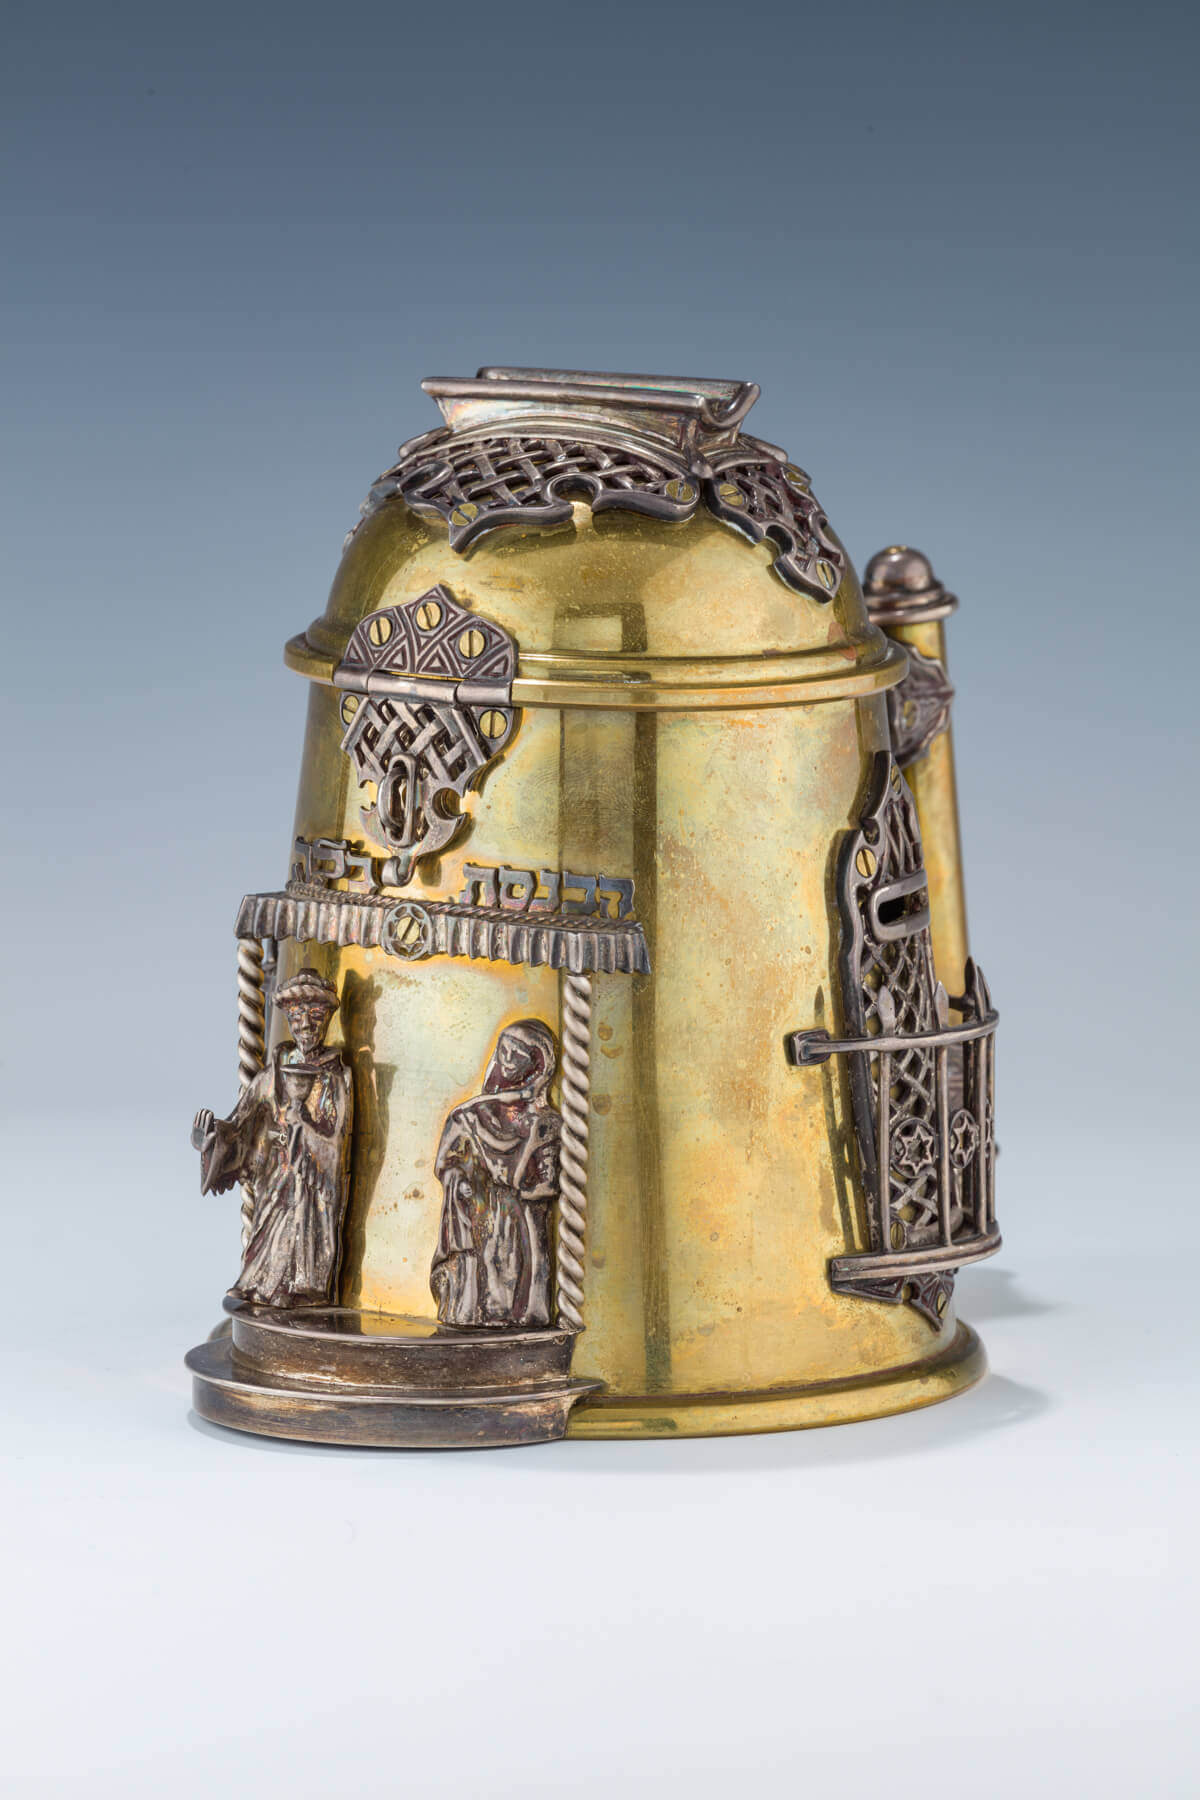 154. A STERLING AND BRASS CHARITY CONTAINER BY MICHAEL ENDE